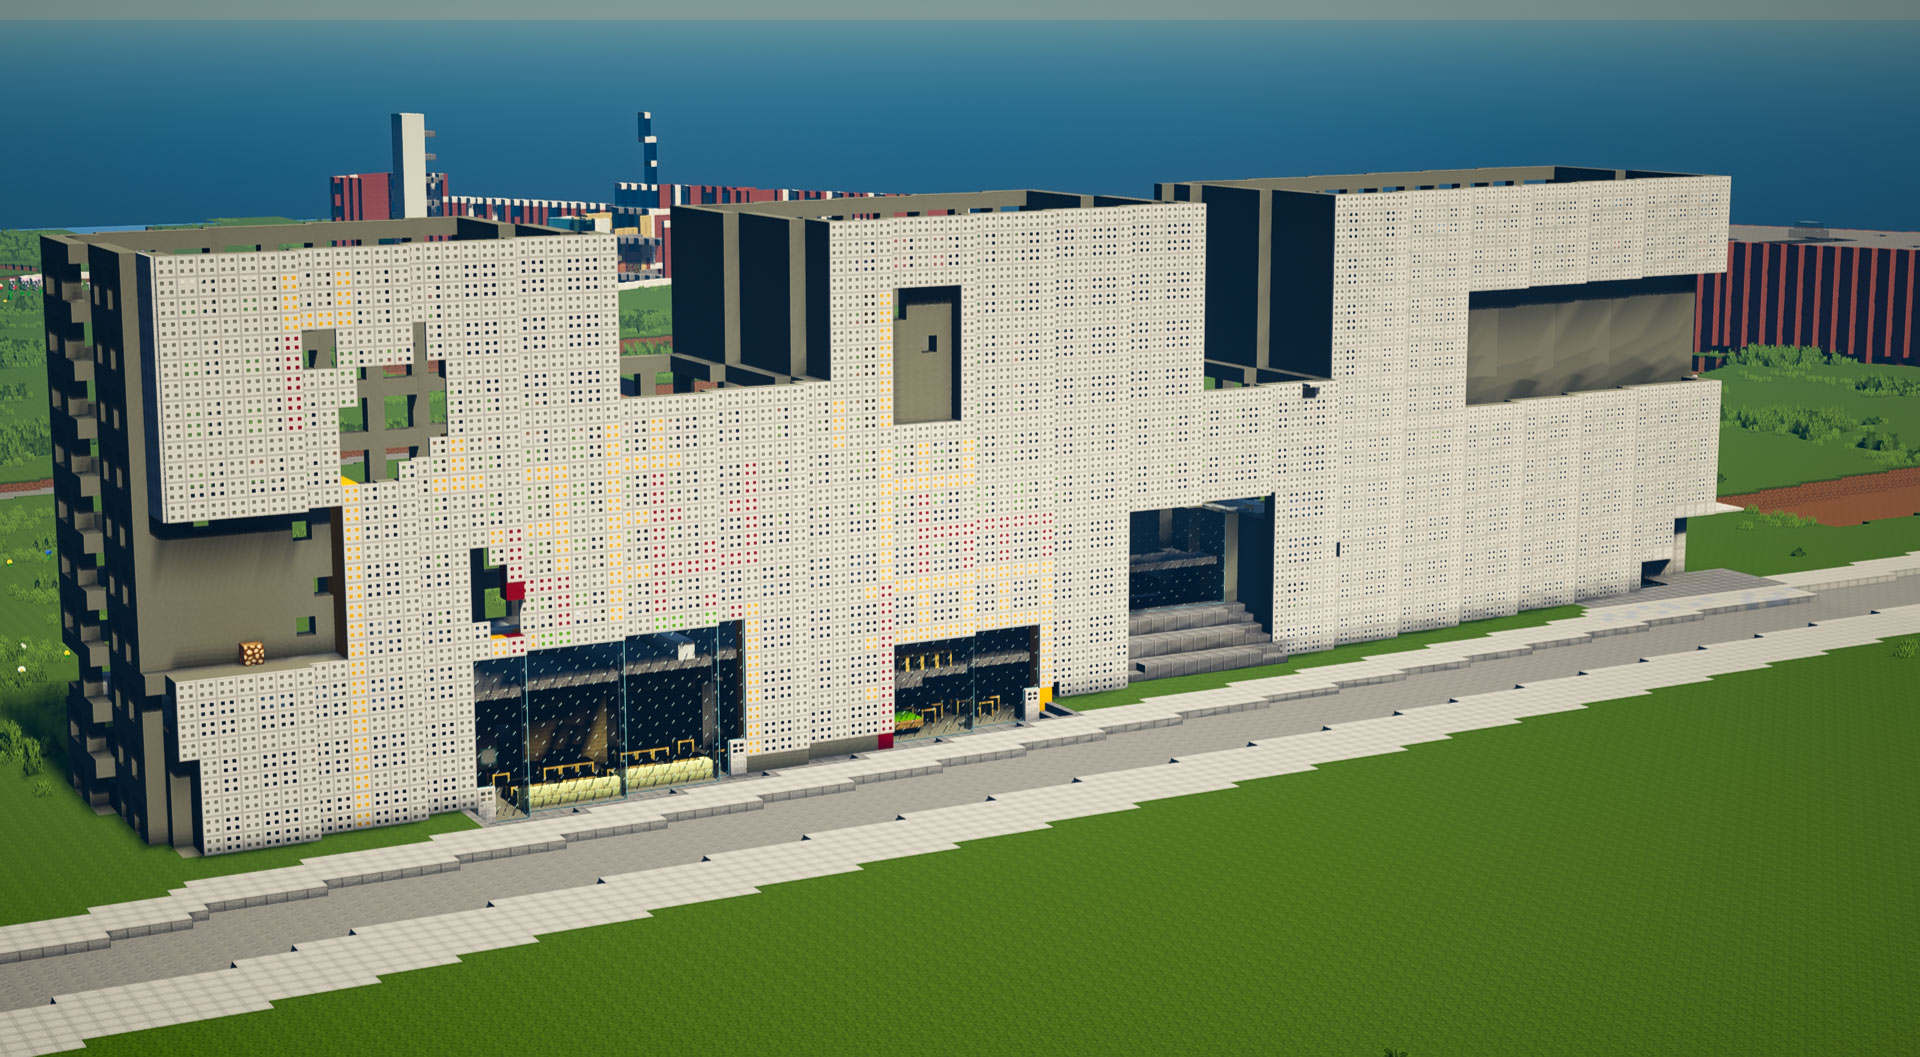 minecraft campus view of Simmons Hall